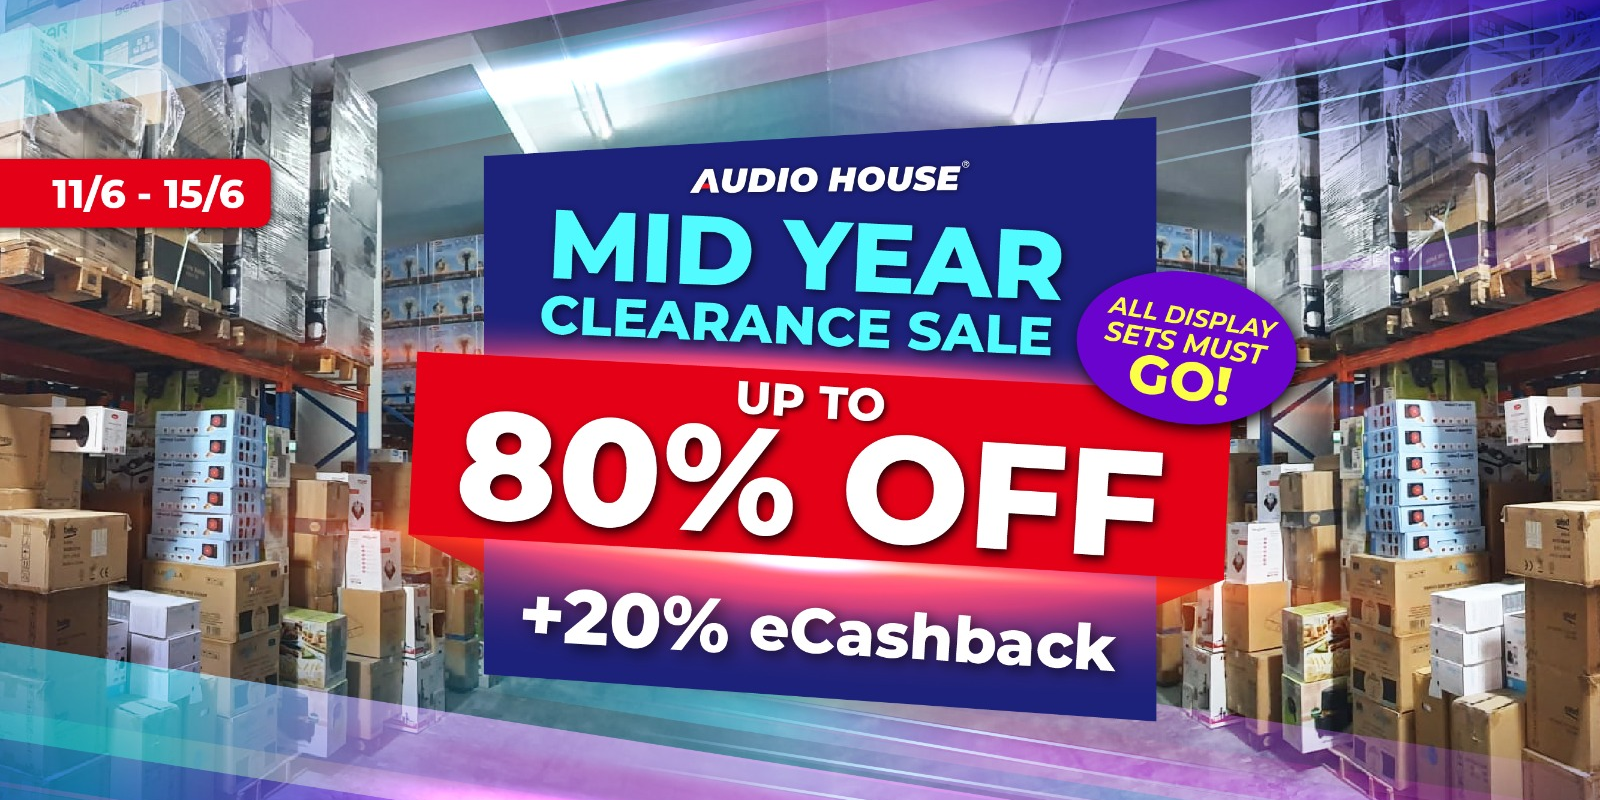 [Audio House Mid-Year Clearance Sale] Get Up to 80% OFF + Extra 20% eCashback with Every $100 Spent!